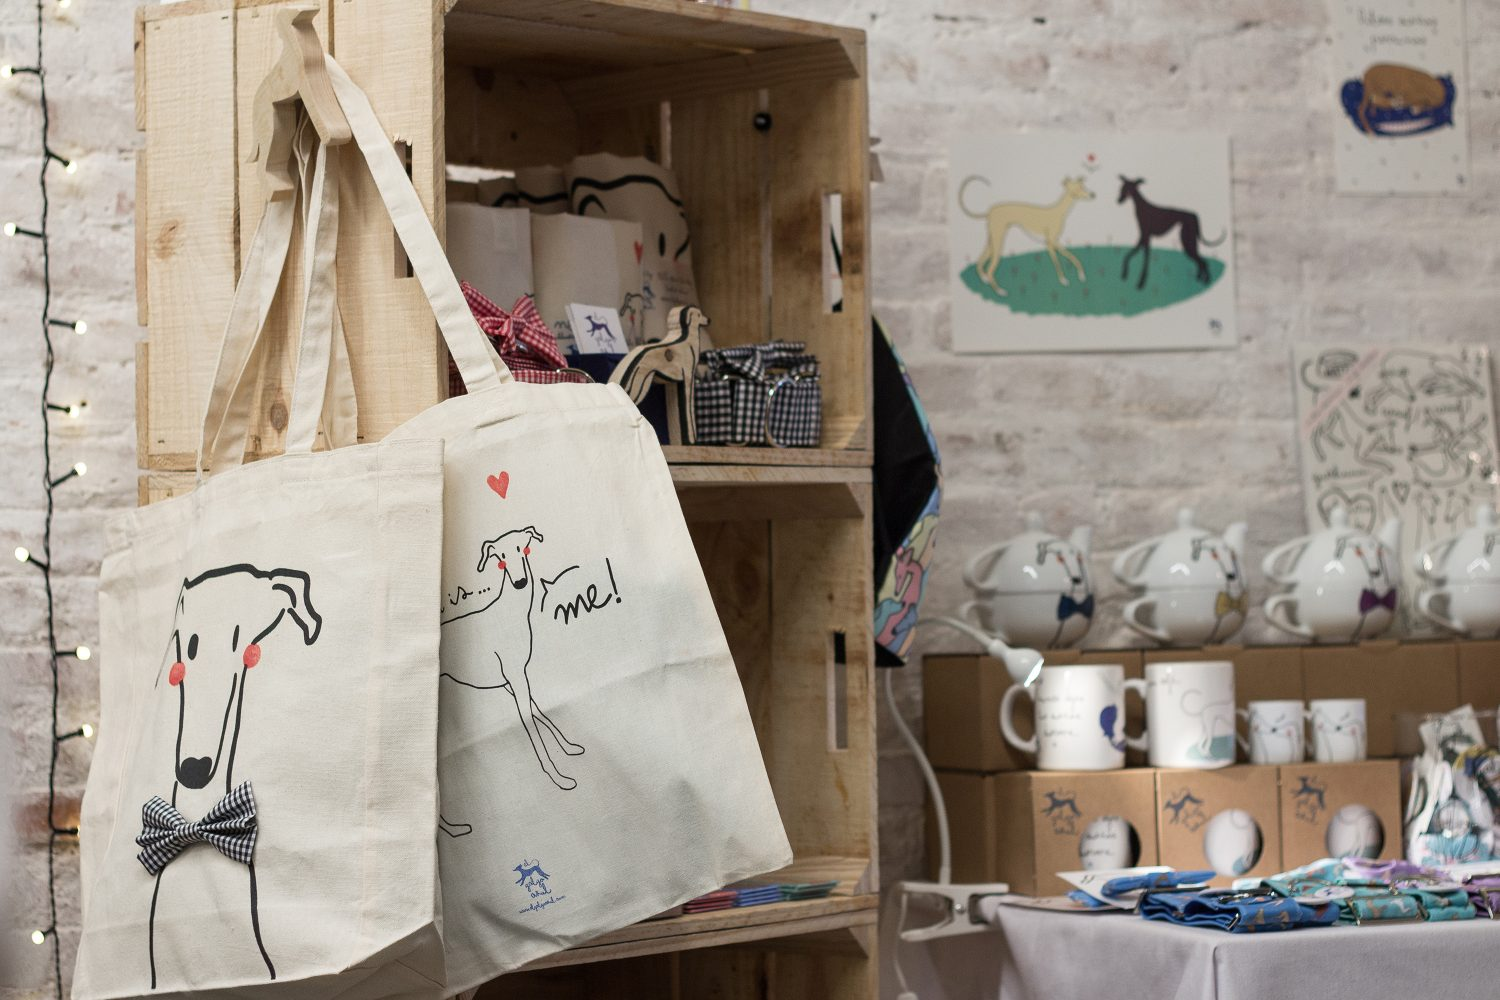 greyhound, totebag, galgo